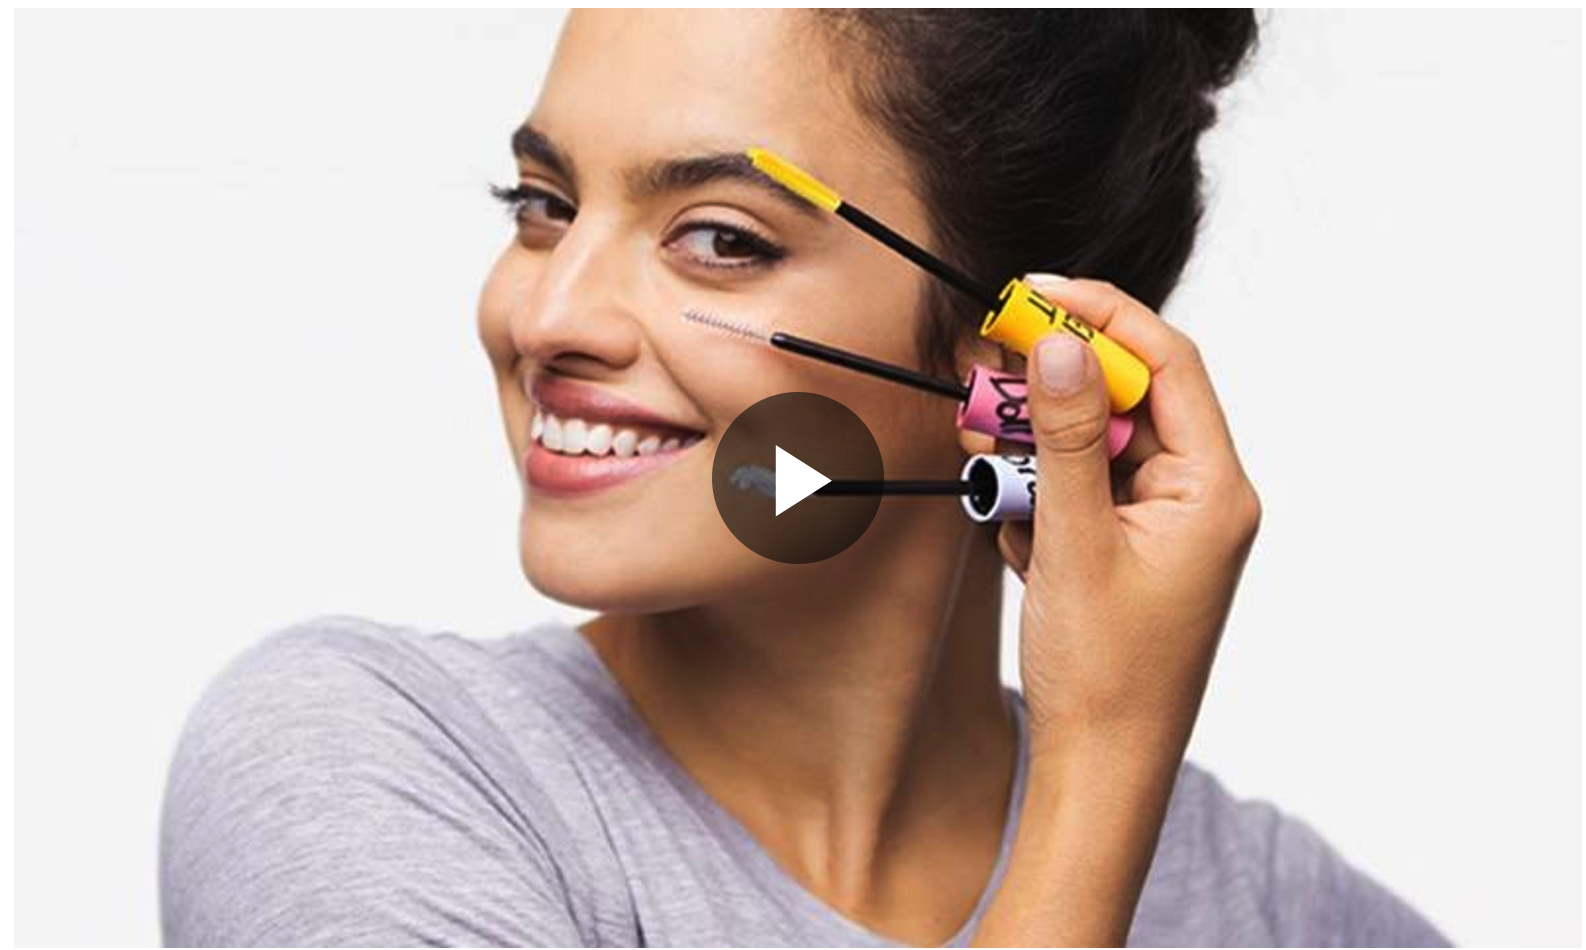 VIDEO TUTORIAL: 1 MASCARA OF EYELASHES, 4 LOOKS!